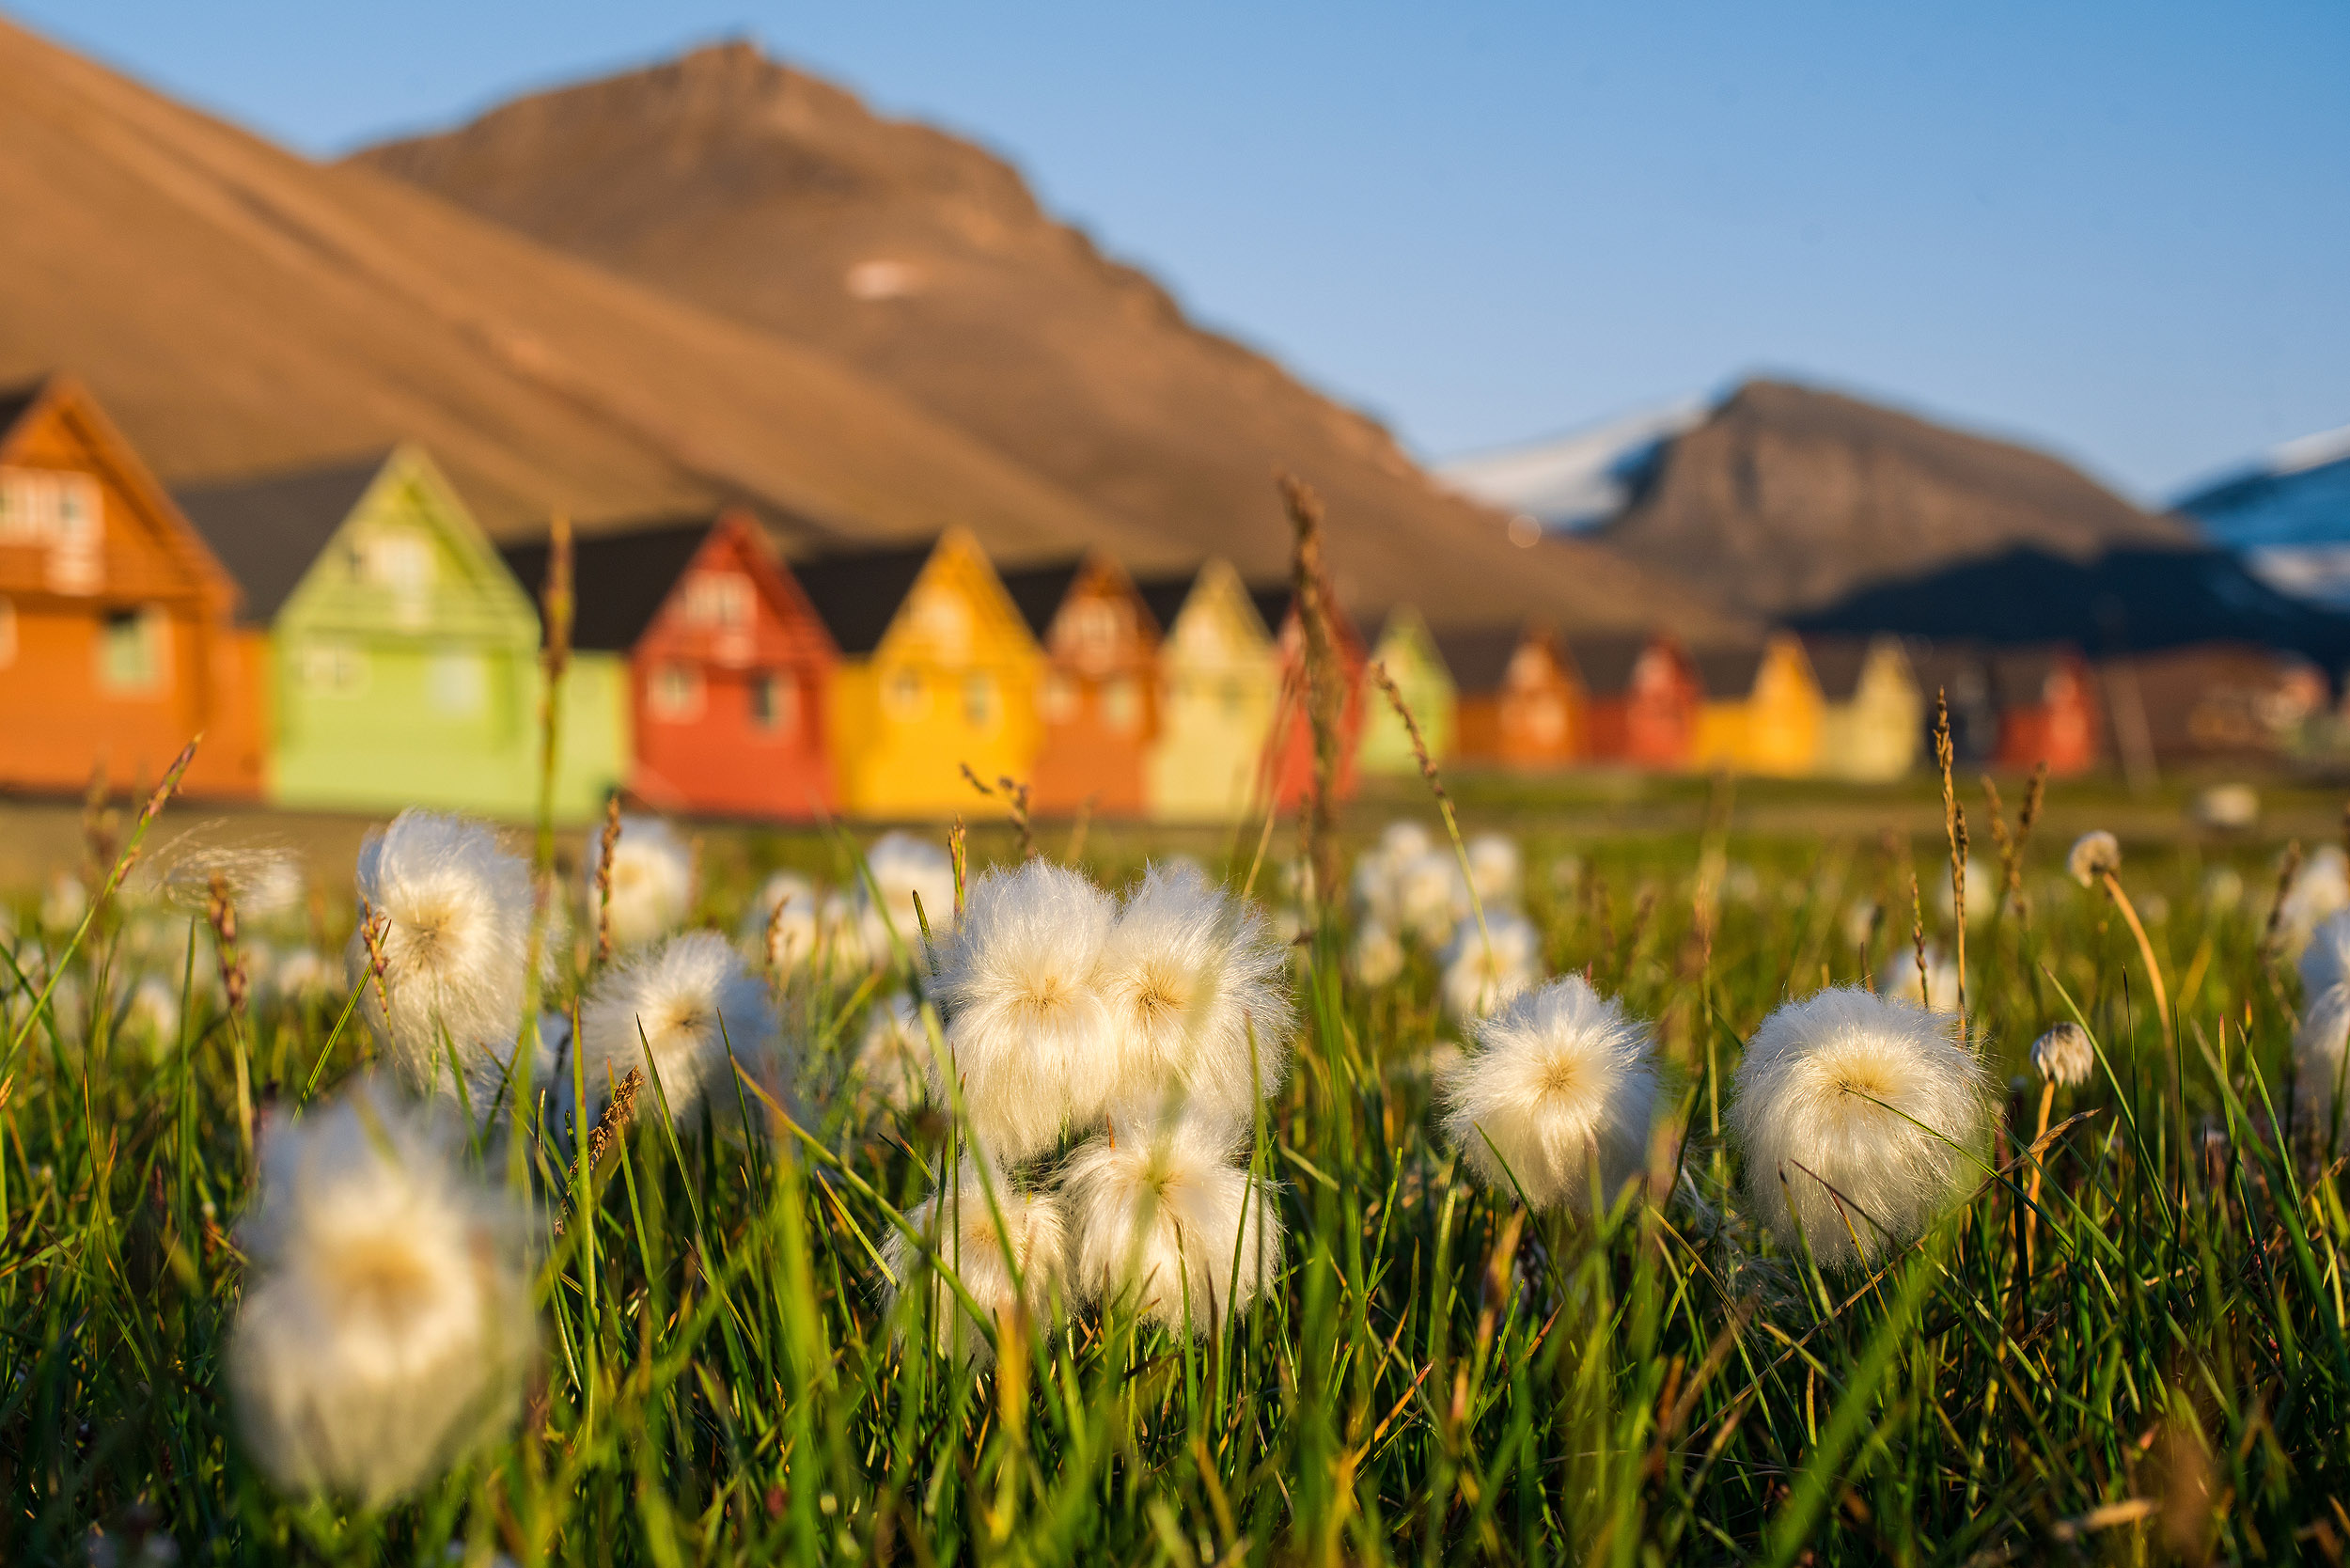 longyearbyen in summer, cottongrass and colorful houses